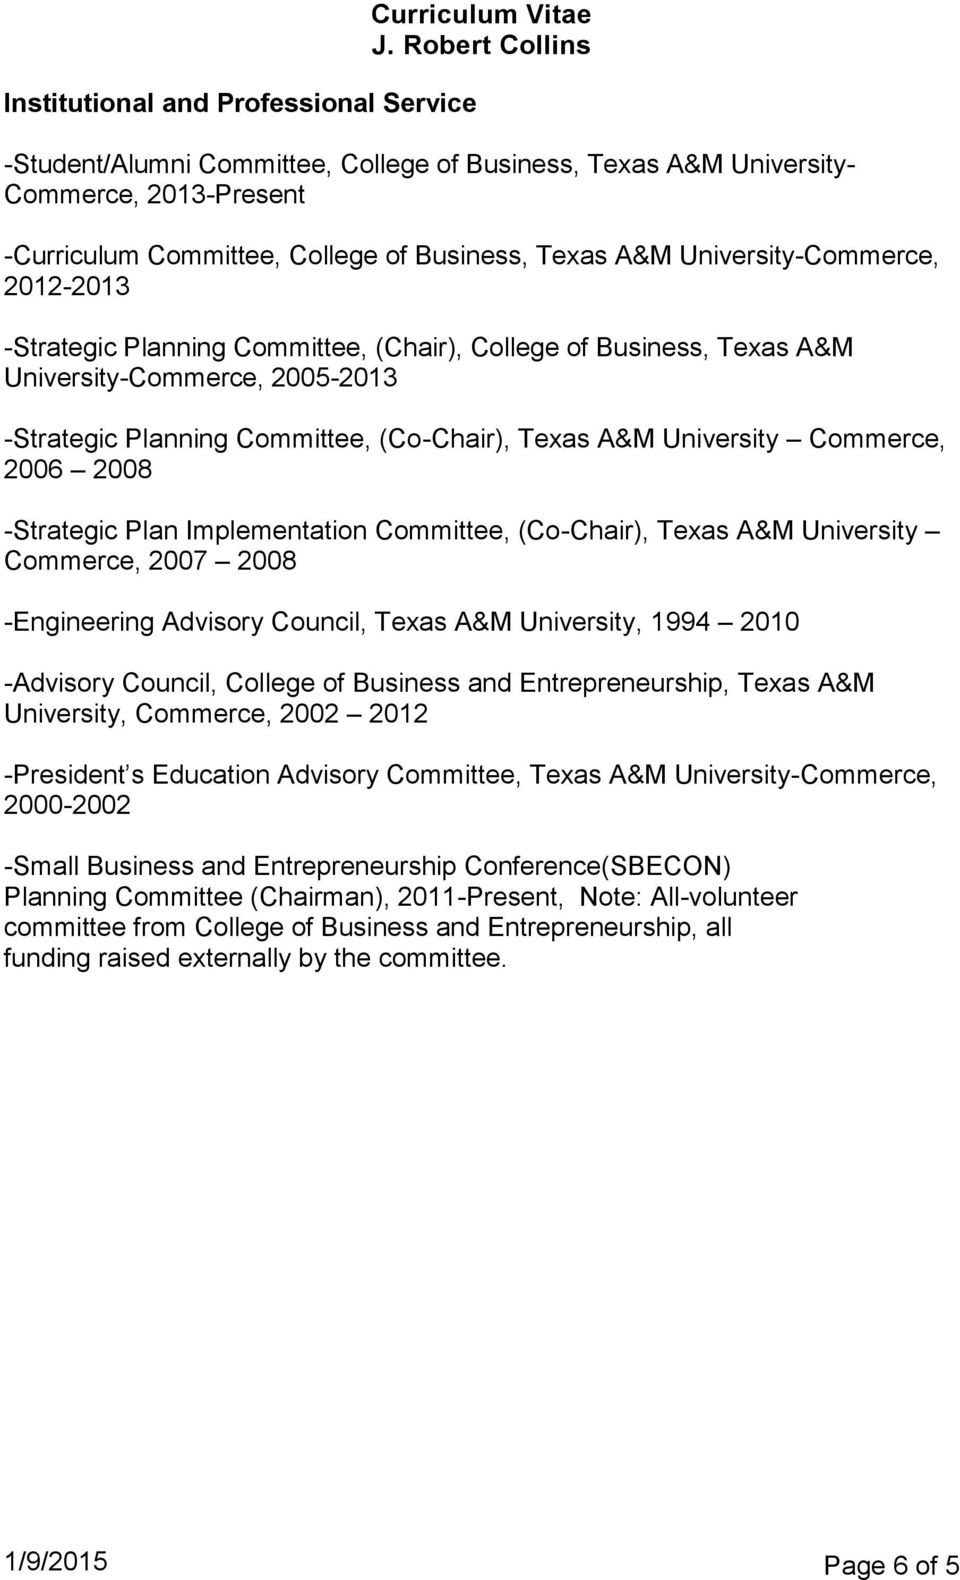 University Commerce, 2006 2008 -Strategic Plan Implementation Committee, (Co-Chair), Texas A&M University Commerce, 2007 2008 -Engineering Advisory Council, Texas A&M University, 1994 2010 -Advisory